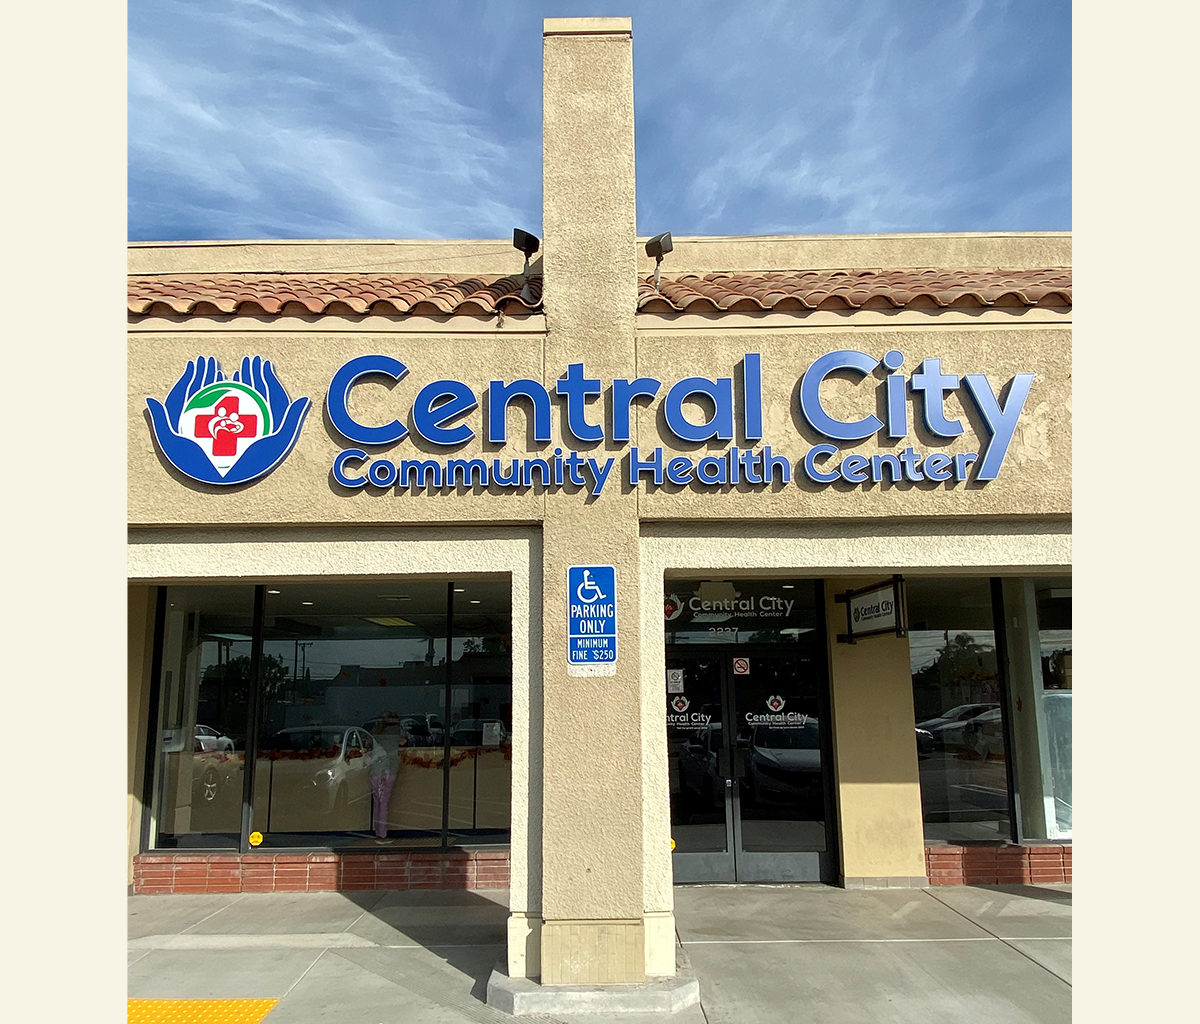 Central City Anaheim Clinic offering Dental Services, picture of front of building and signage Central City Community Health Center